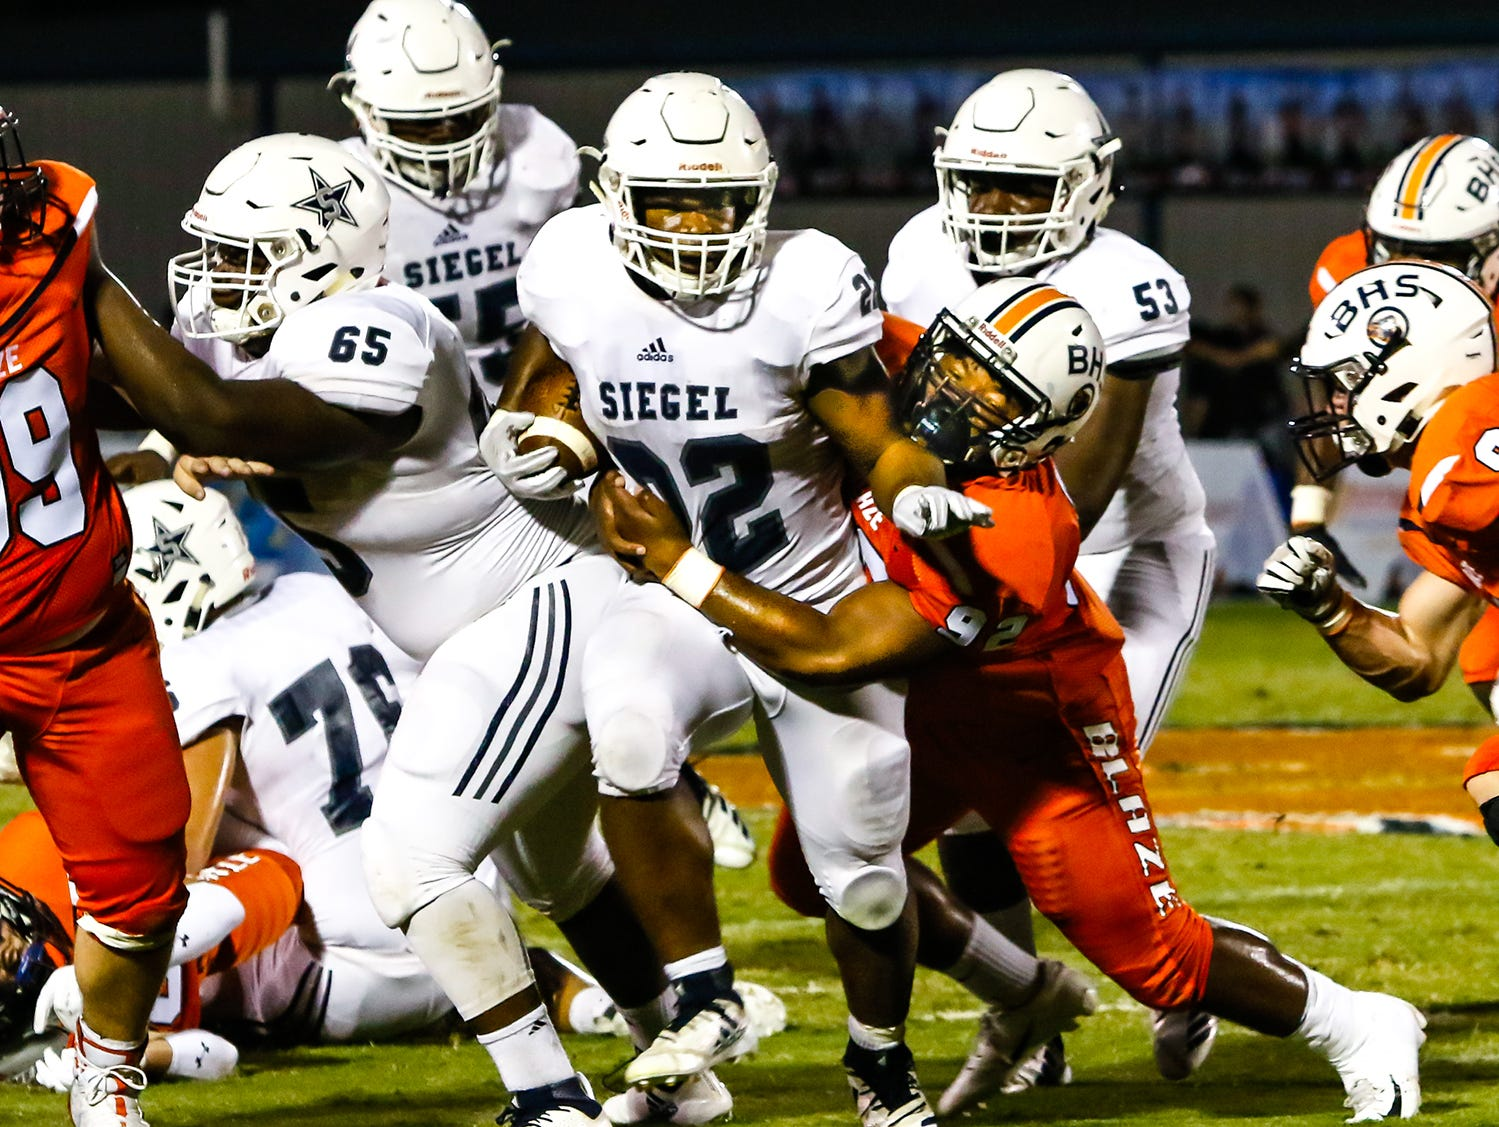 Siegel's Pat Boykins gains yardage as Blackman's Lorenzo Smith attempts a tackle.